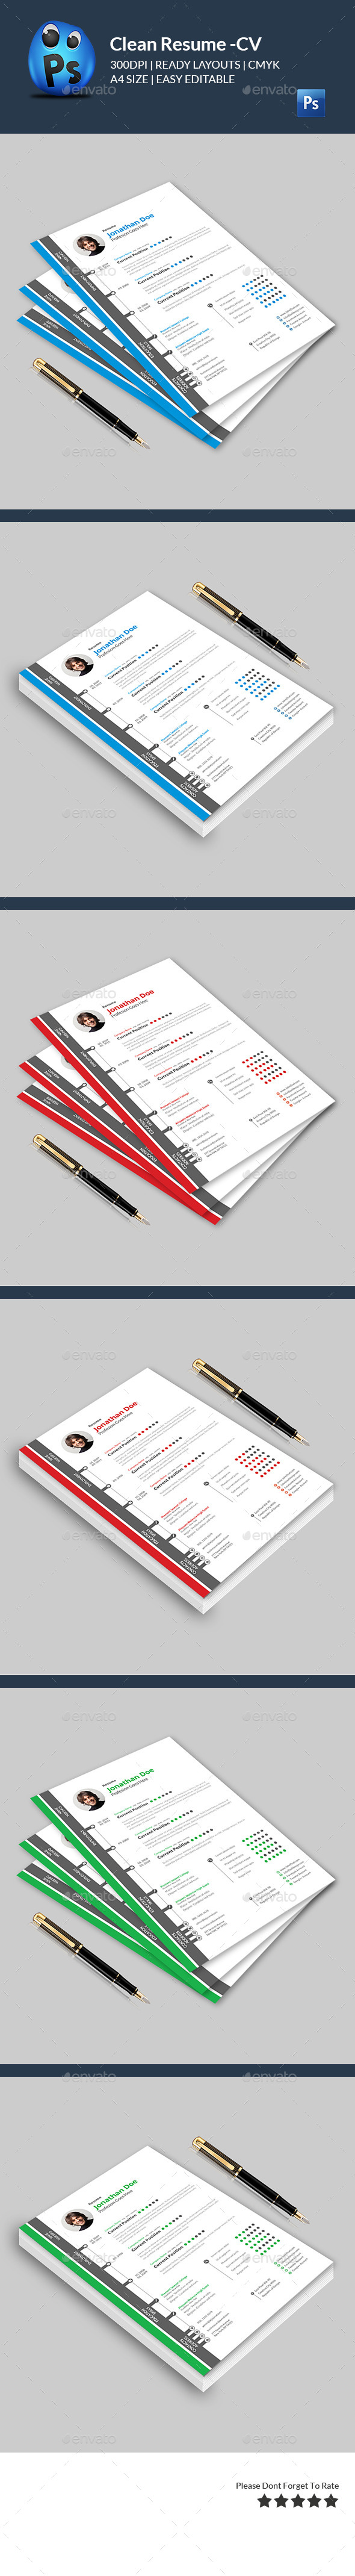 GraphicRiver Clean Resume CV 11942951